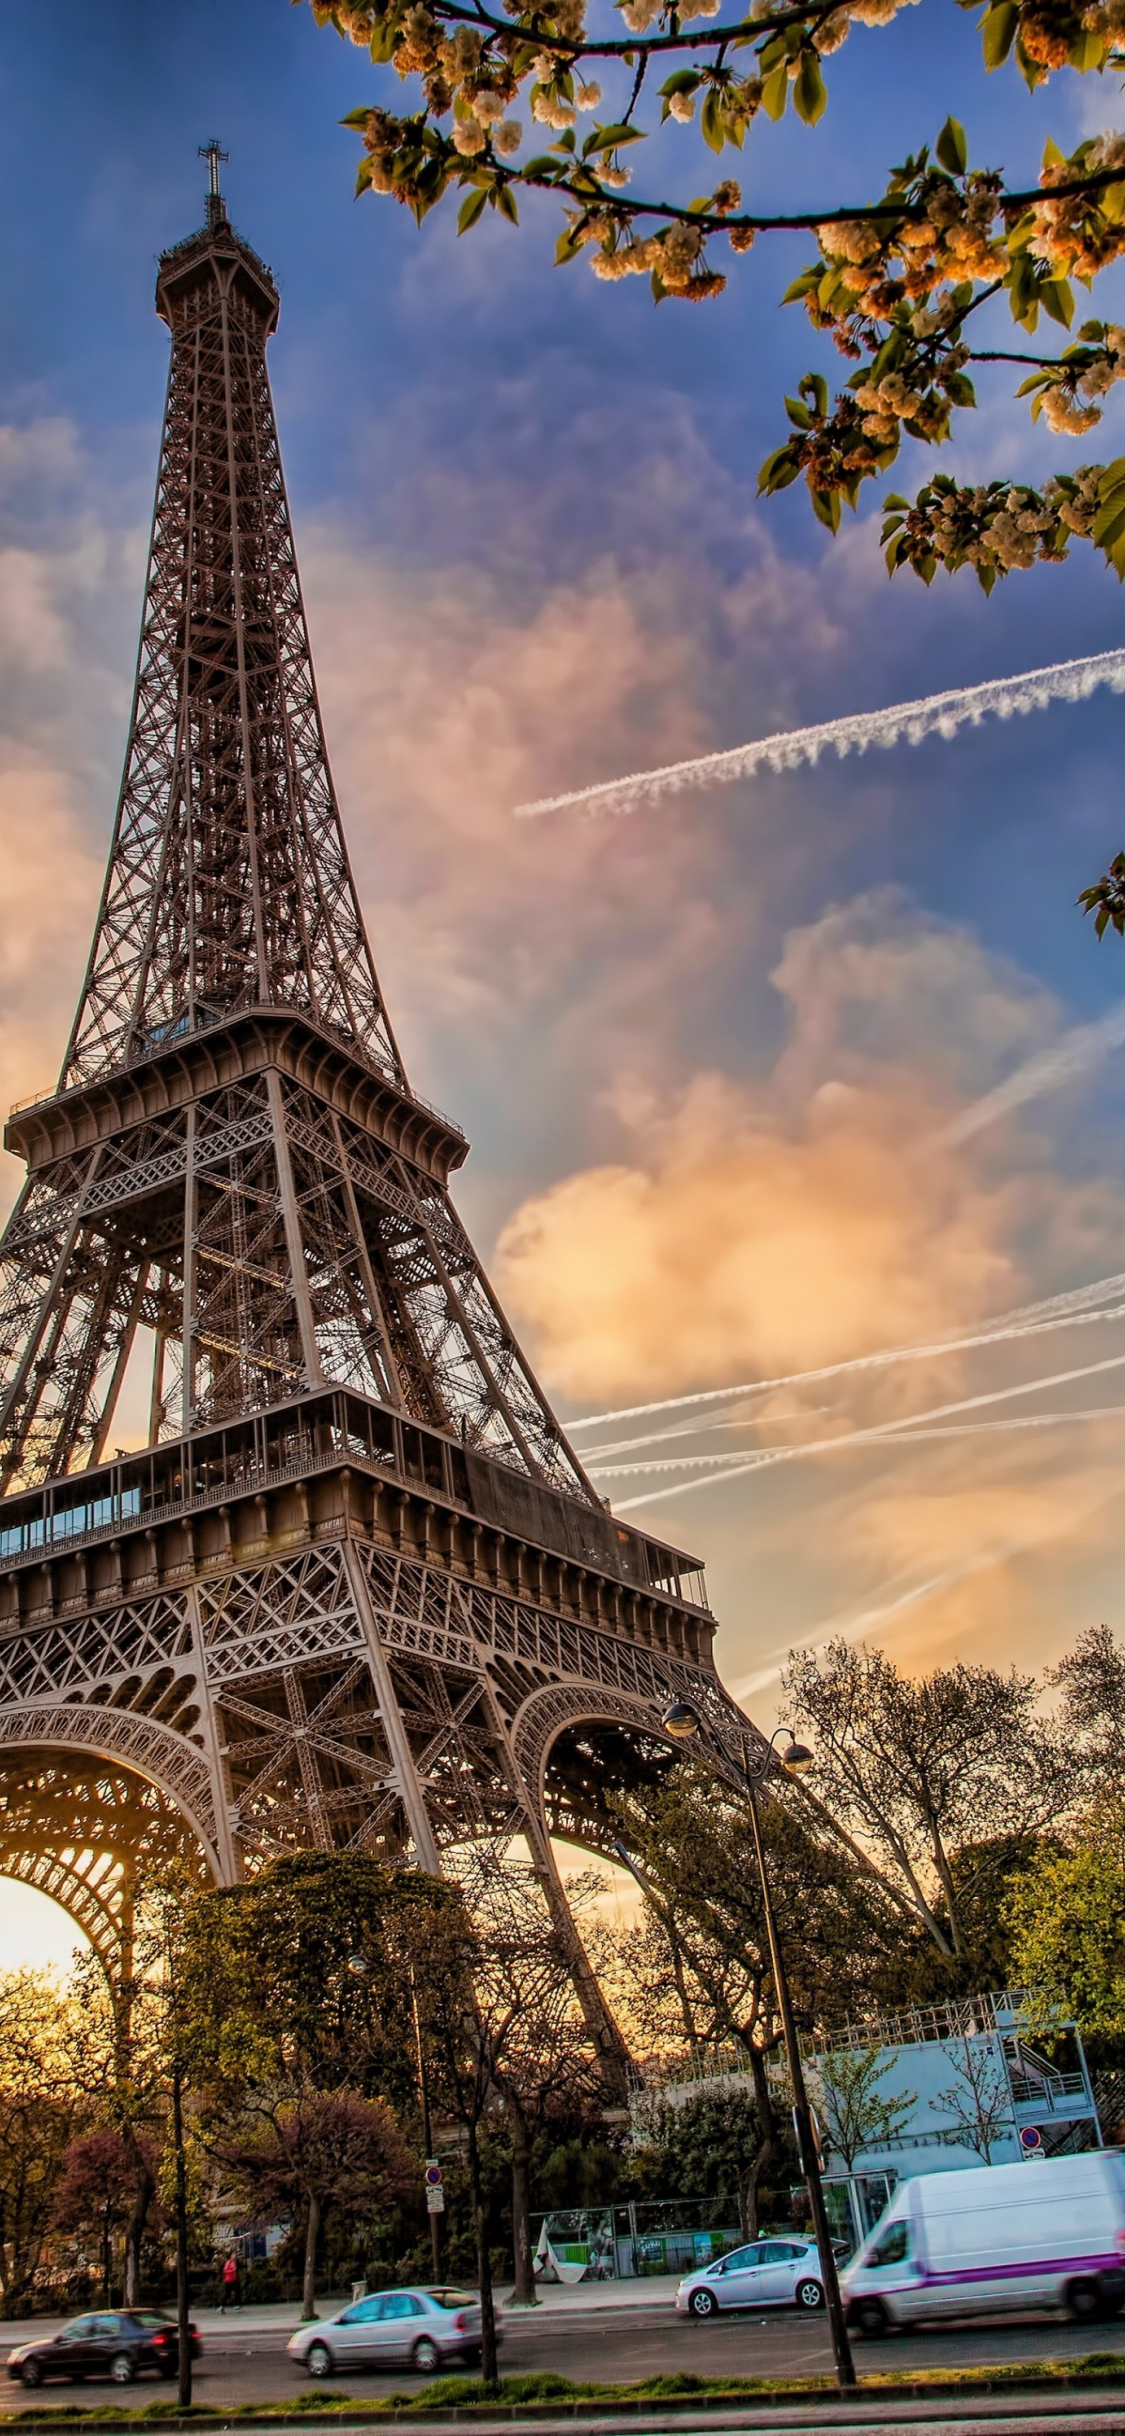 Cute Wallpaper For S5 Download 1125x2436 Wallpaper Eiffel Tower Architecture